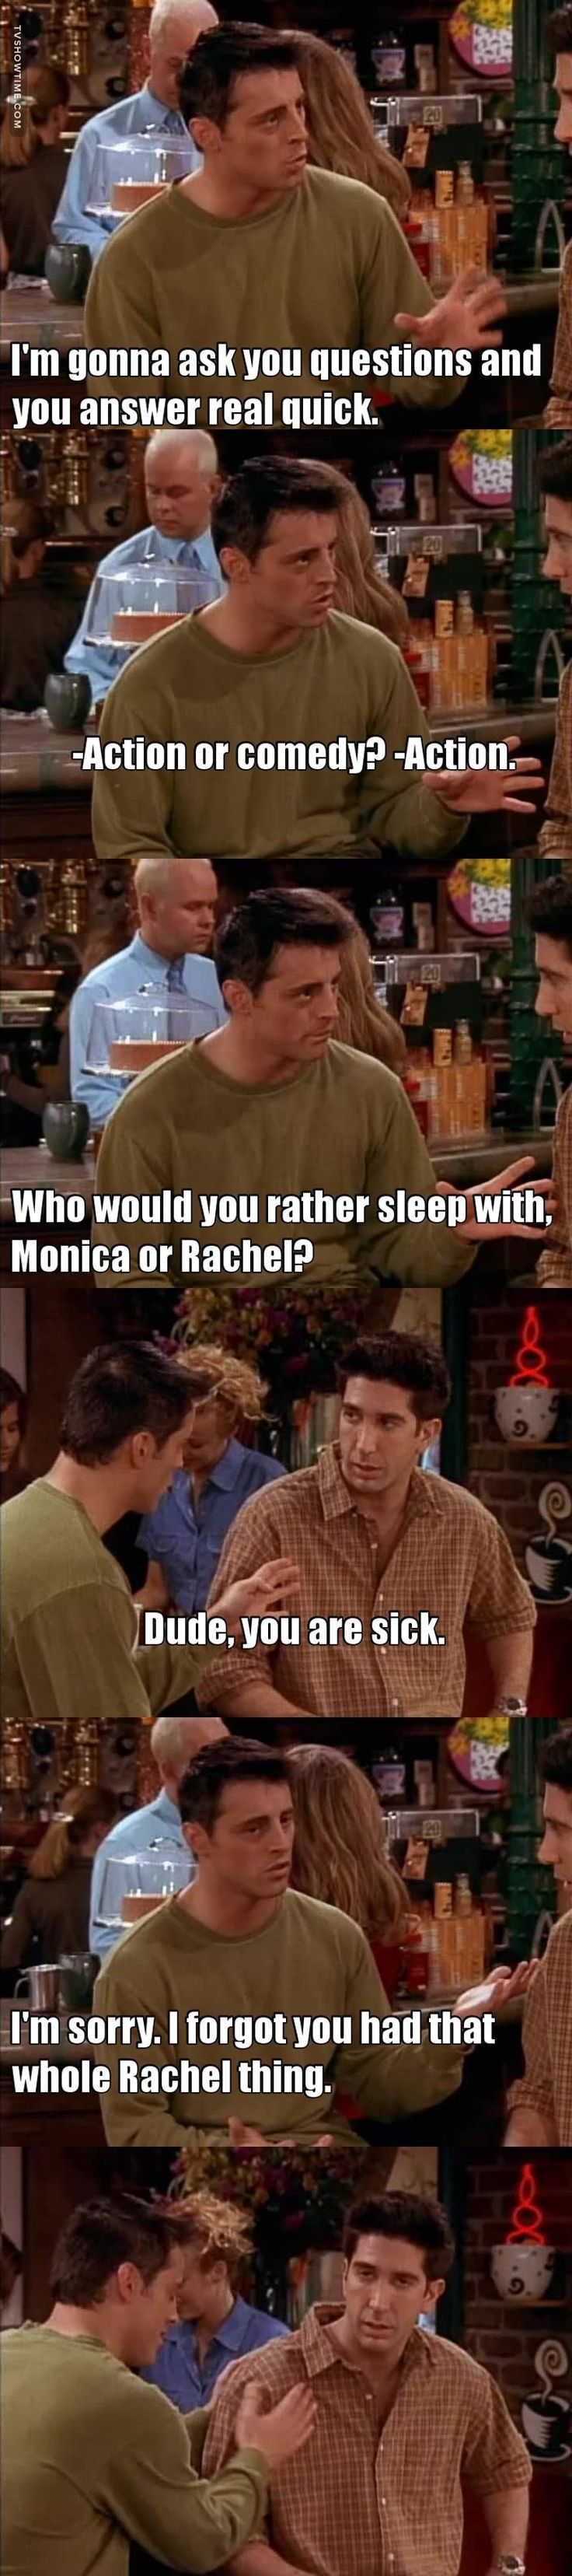 He's not Monica's brother at all